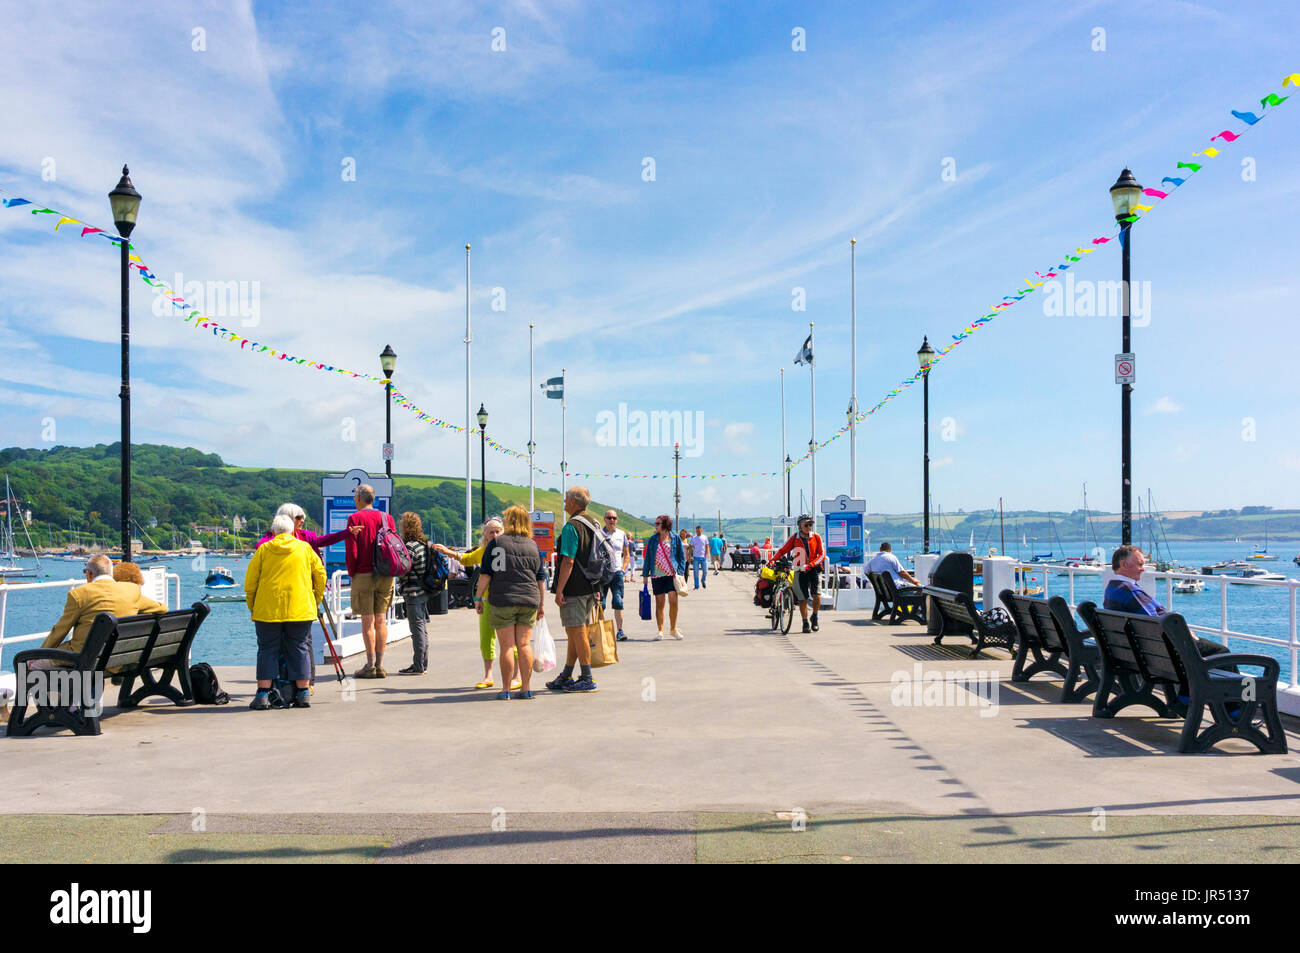 Falmouth pier, Cornwall in summer with tourists - Stock Image